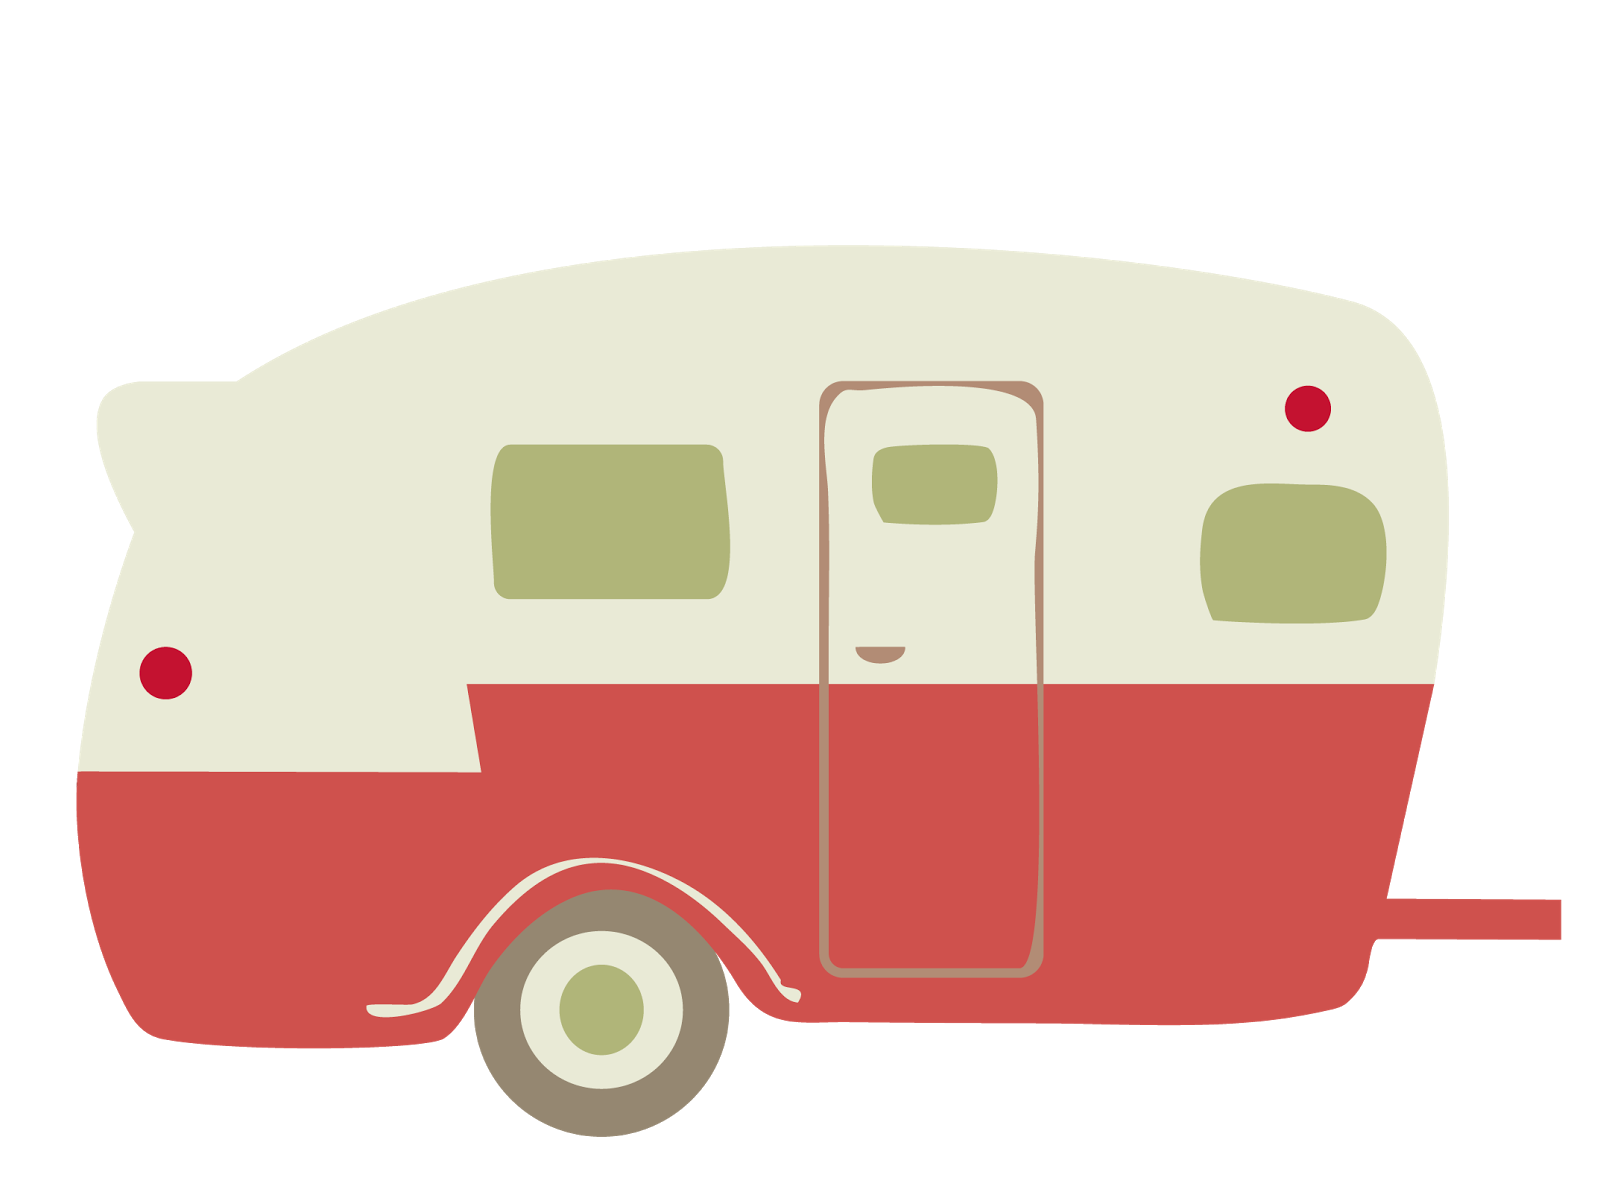 image library download Caravan motorhome free on. Camper clipart